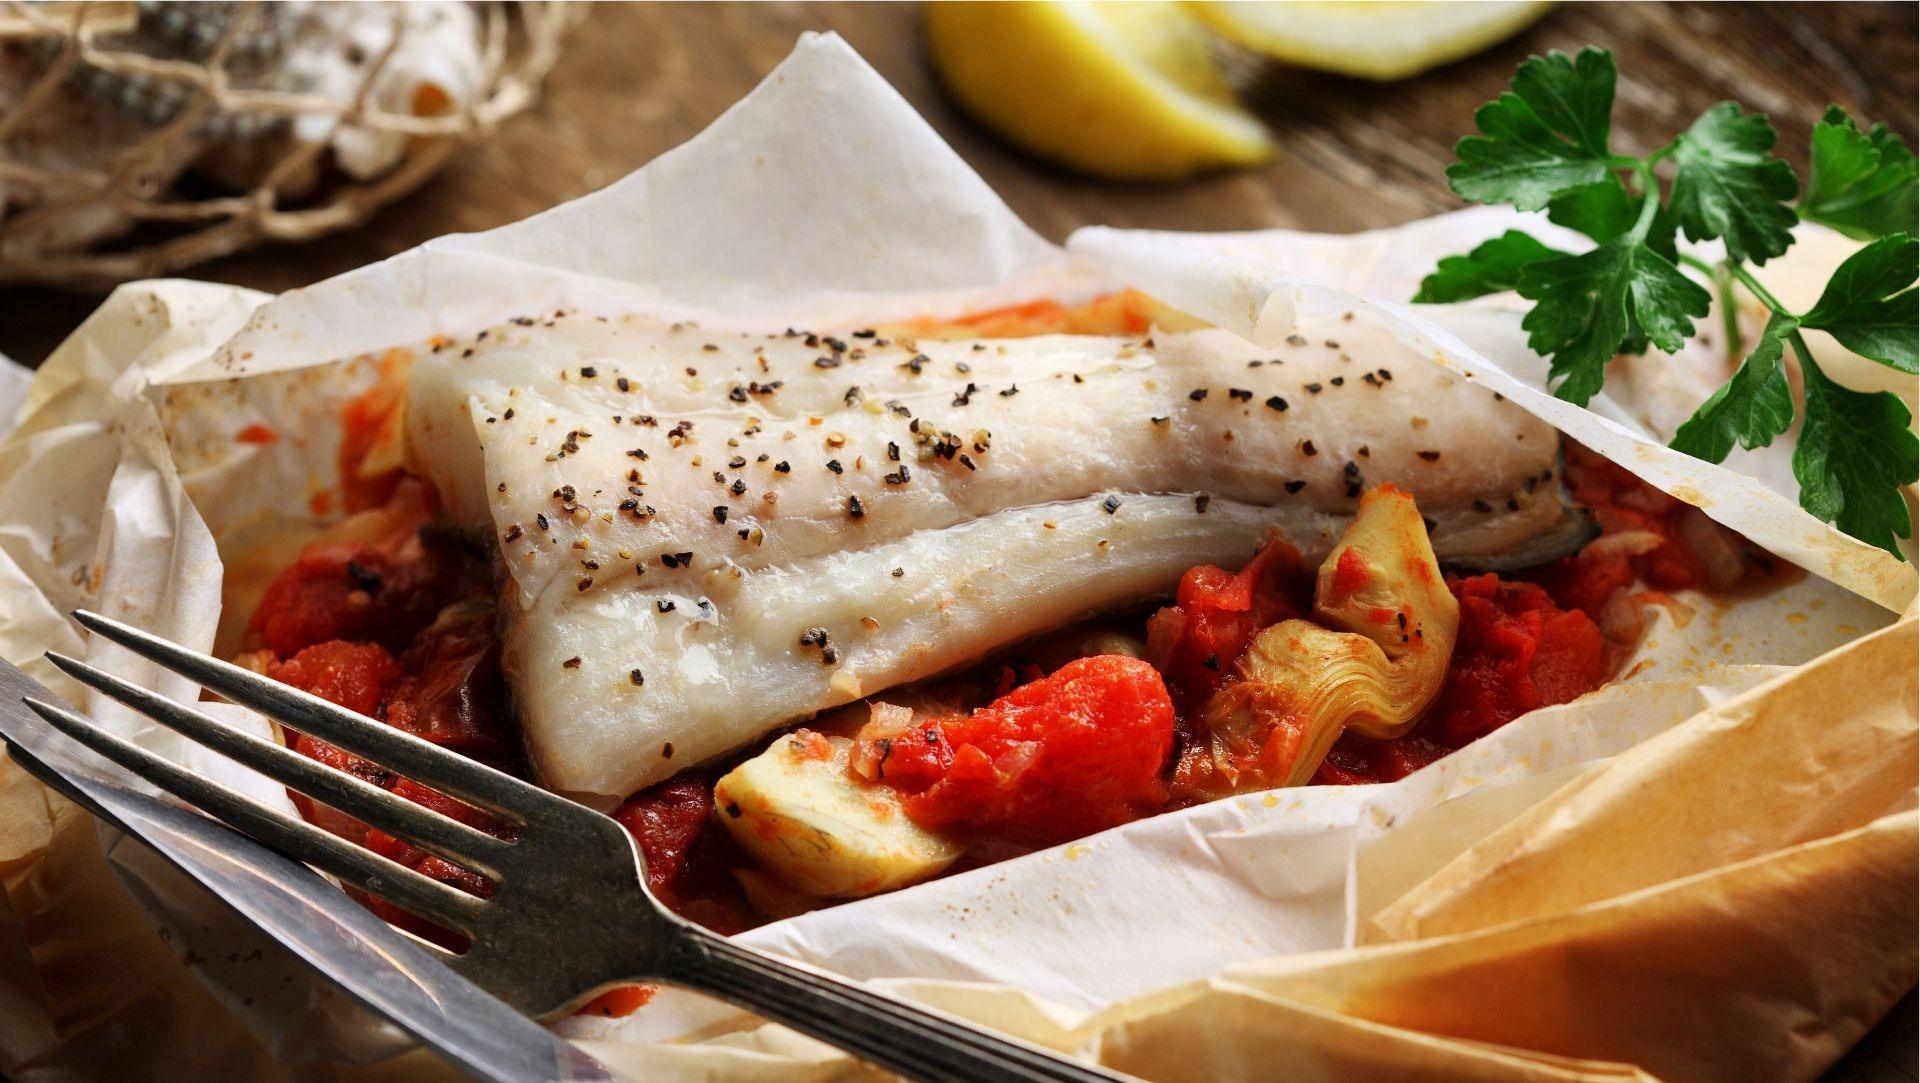 Halibut filet with roasted tomato and artichoke in wax paper packet